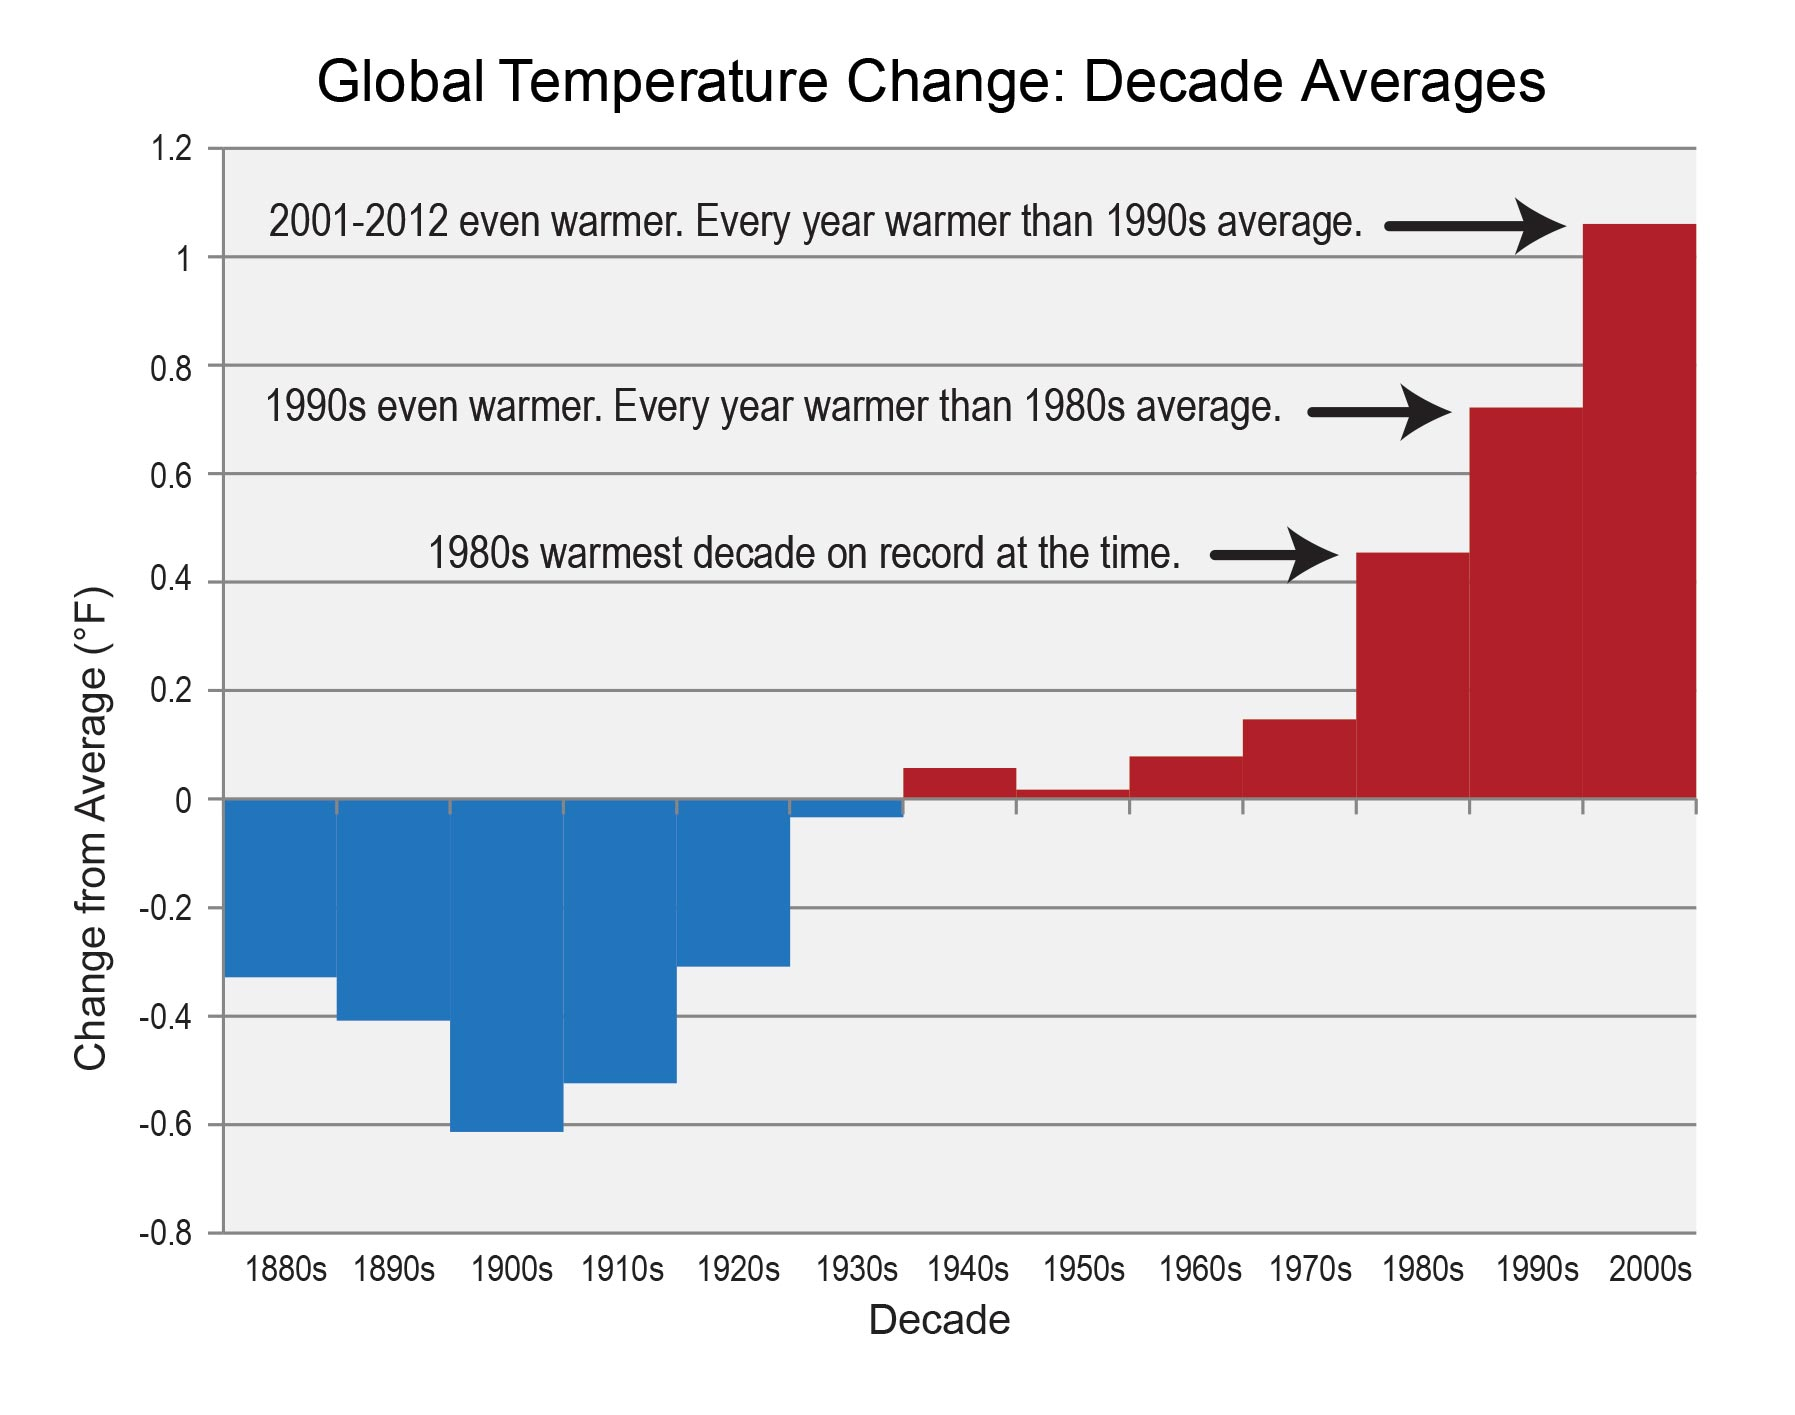 Chart Decadal Averages Of Global Temperature Change